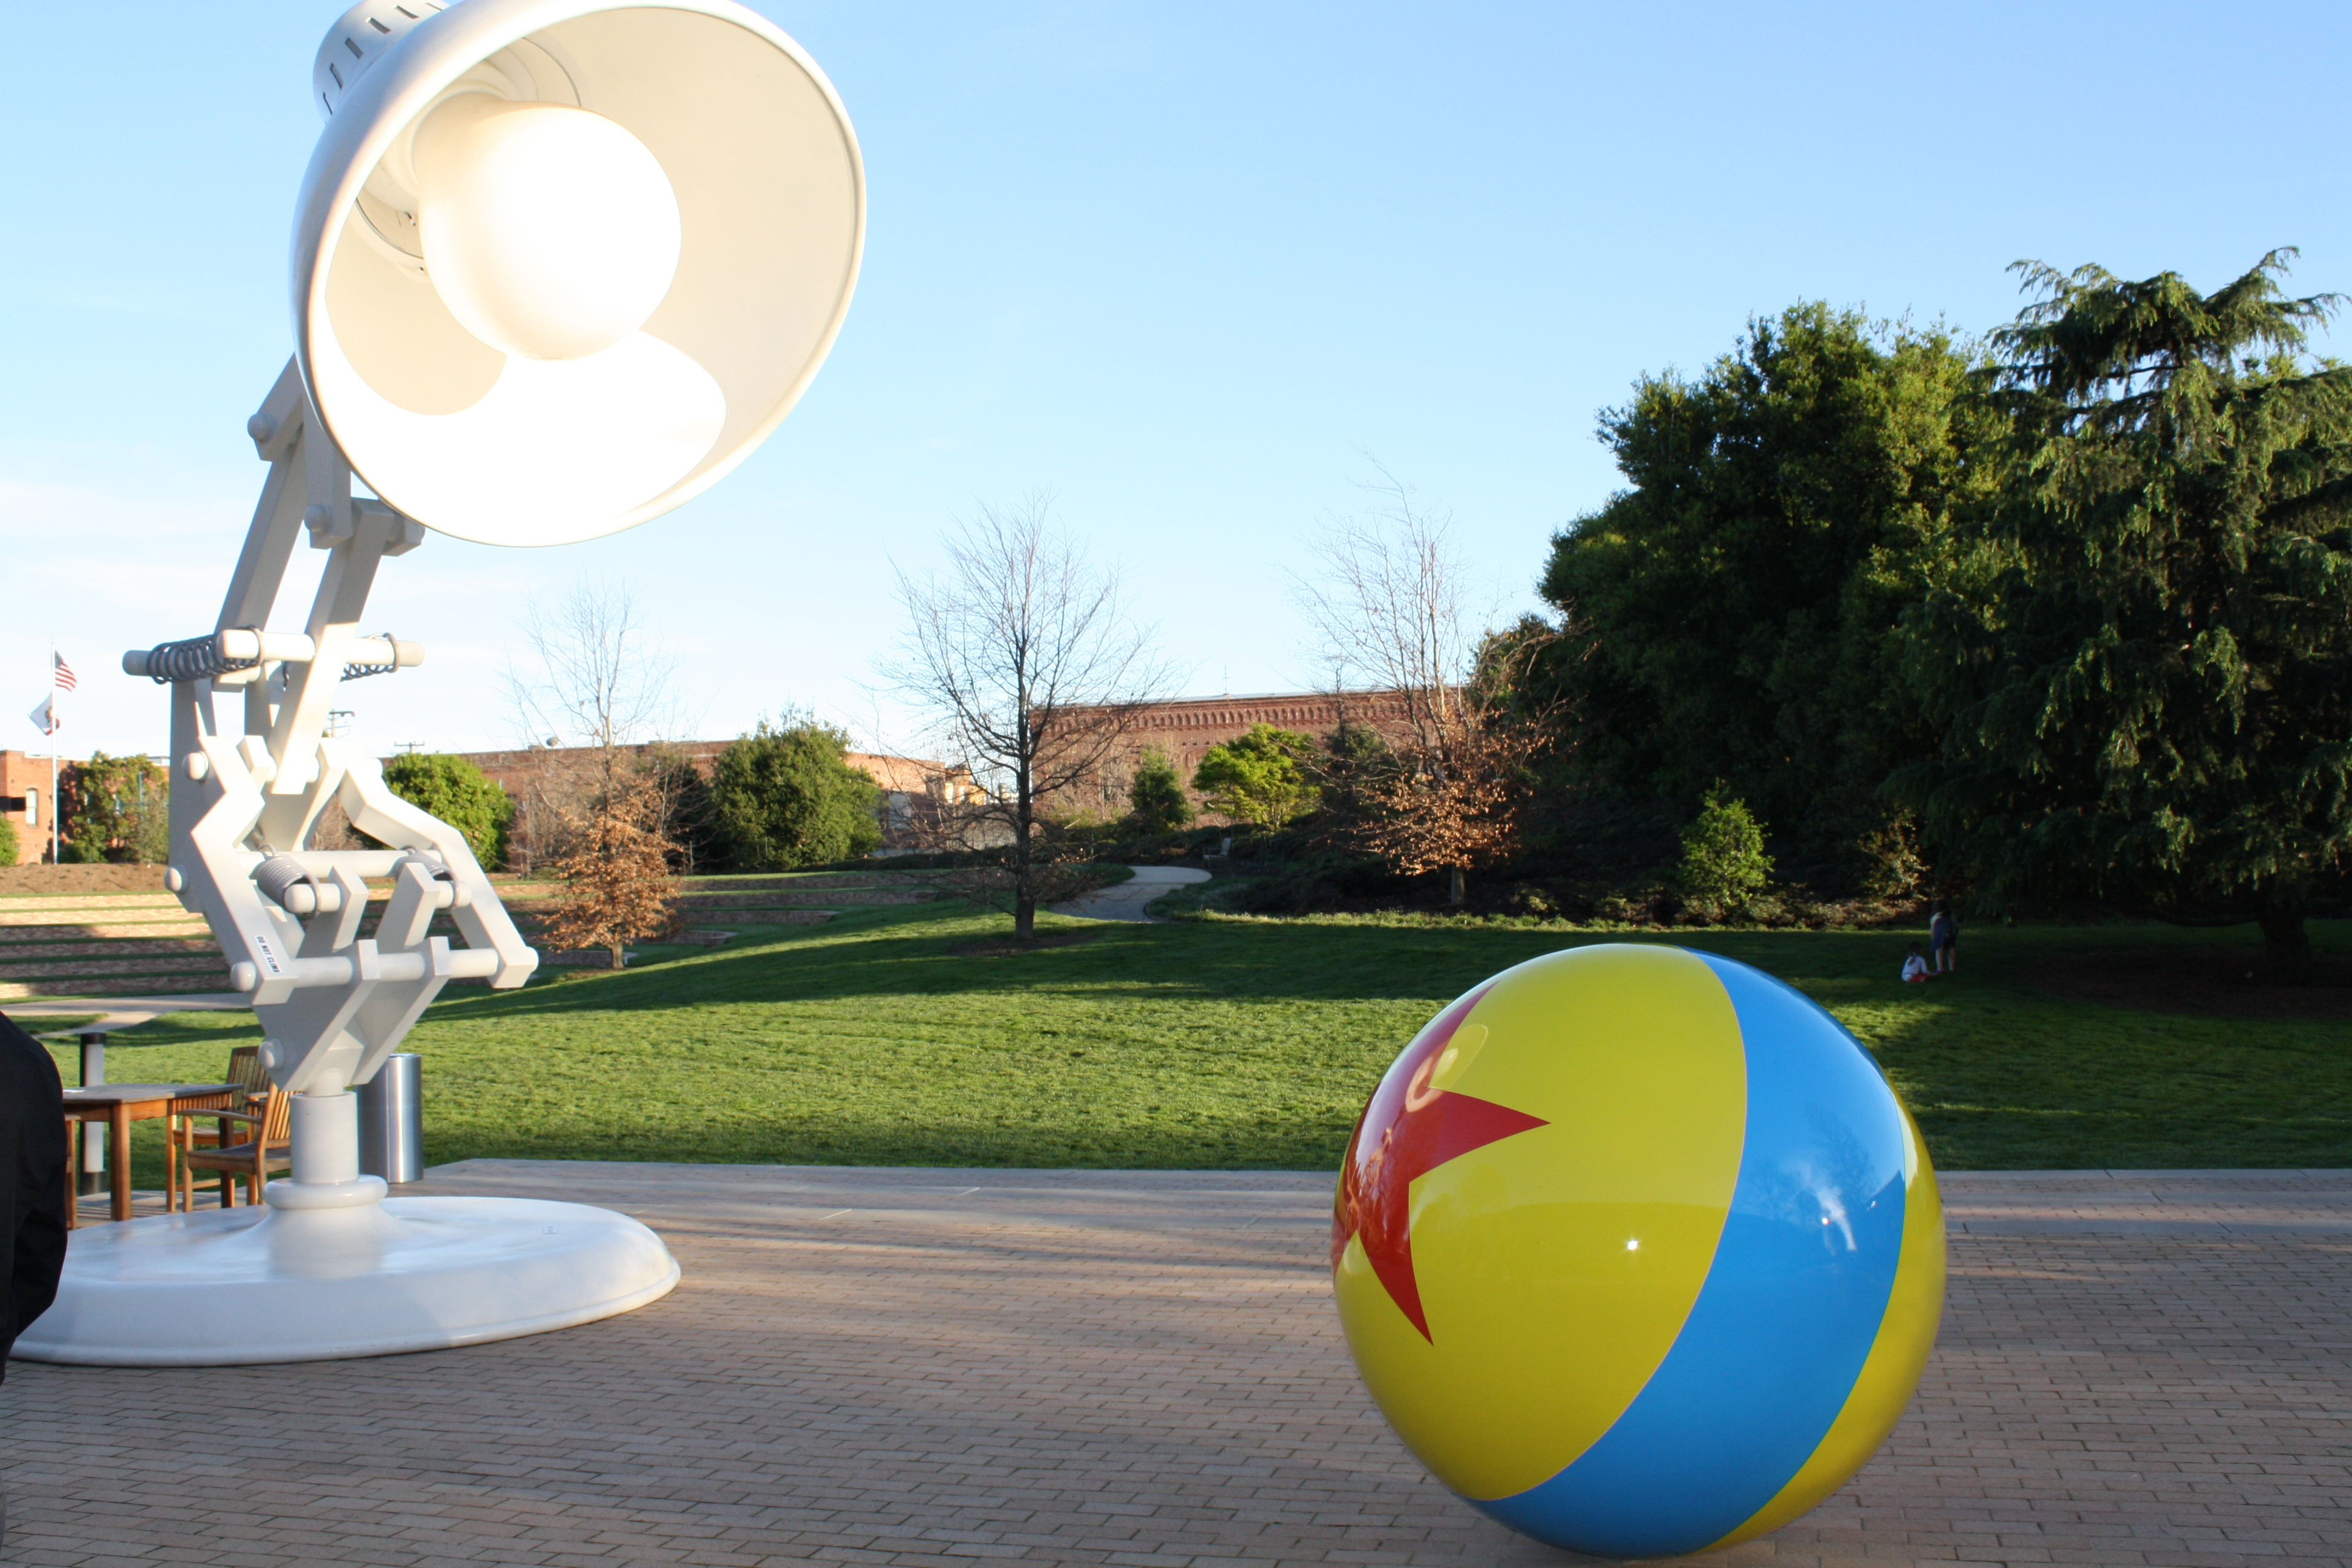 Pixar Animation Studios Press Junket 2011: Introduction